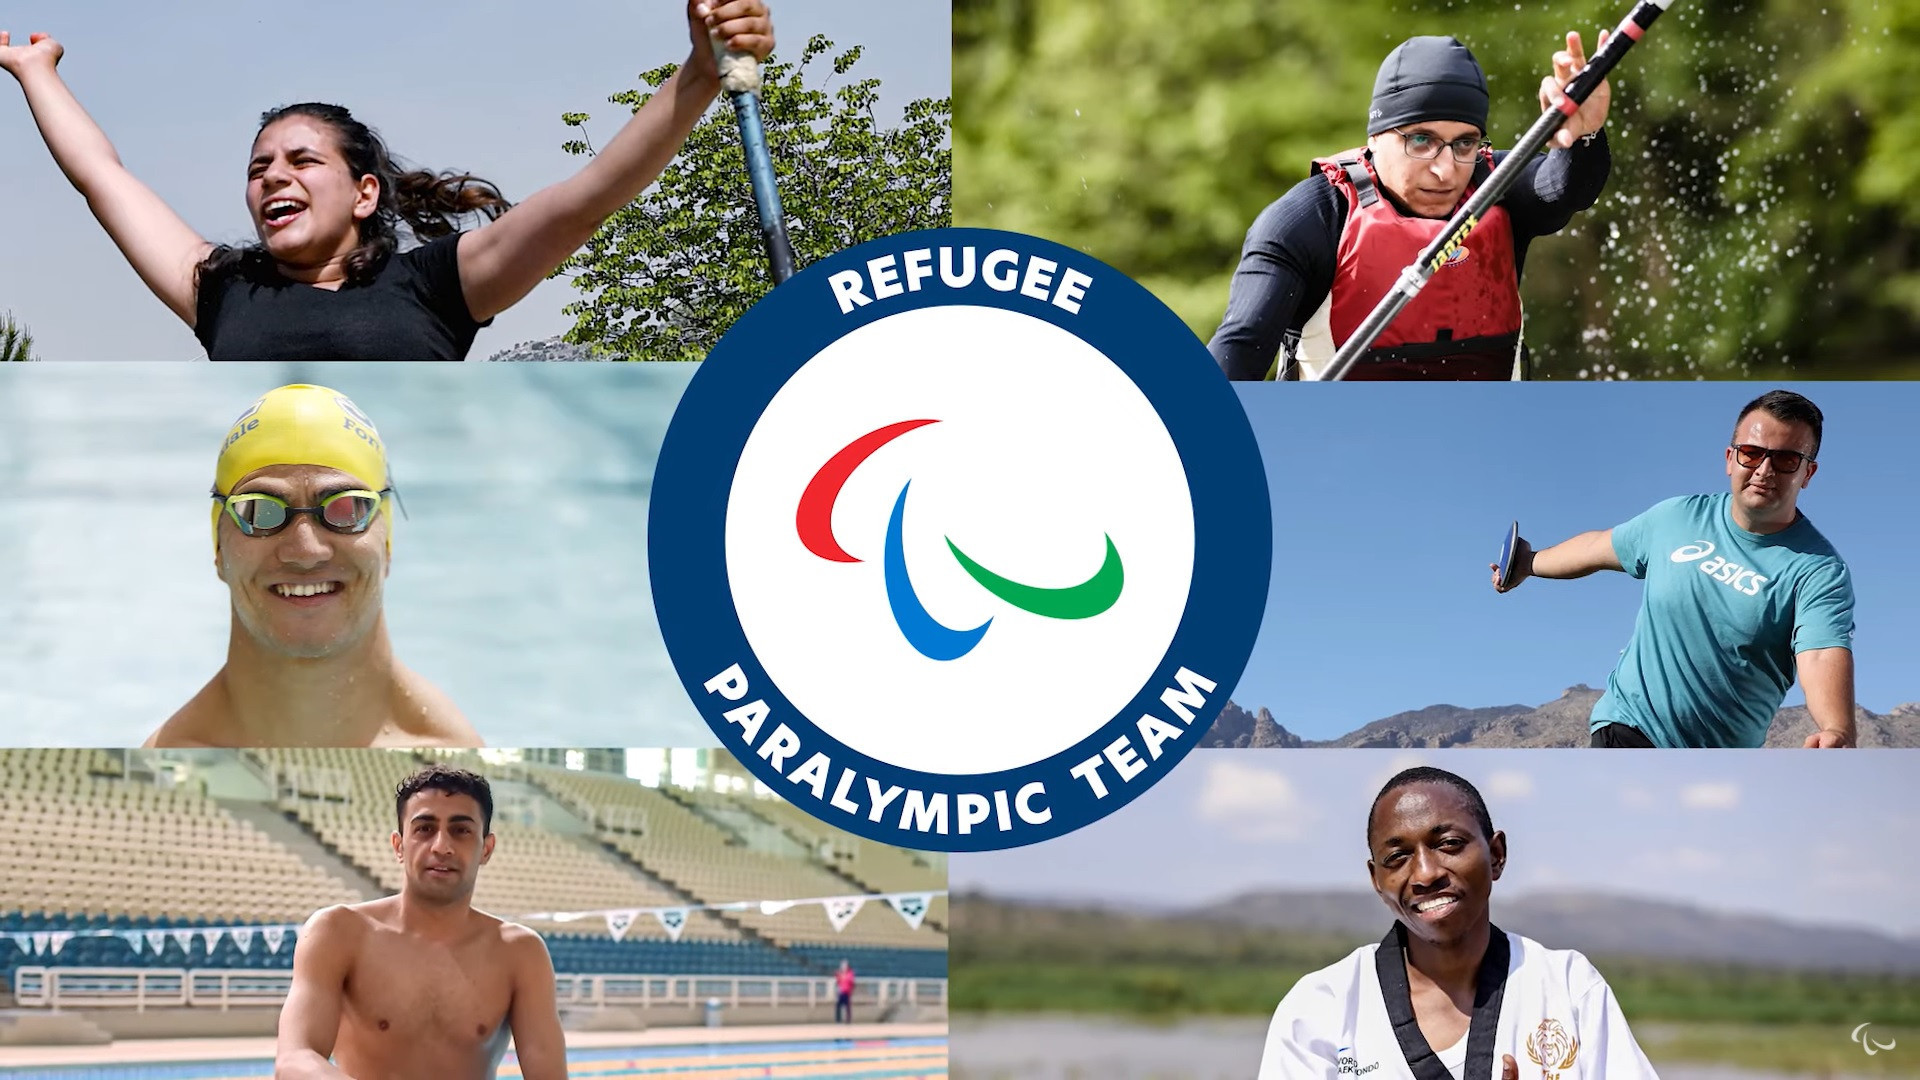 IPC unveils six-strong Refugee Paralympic Team for Tokyo 2020